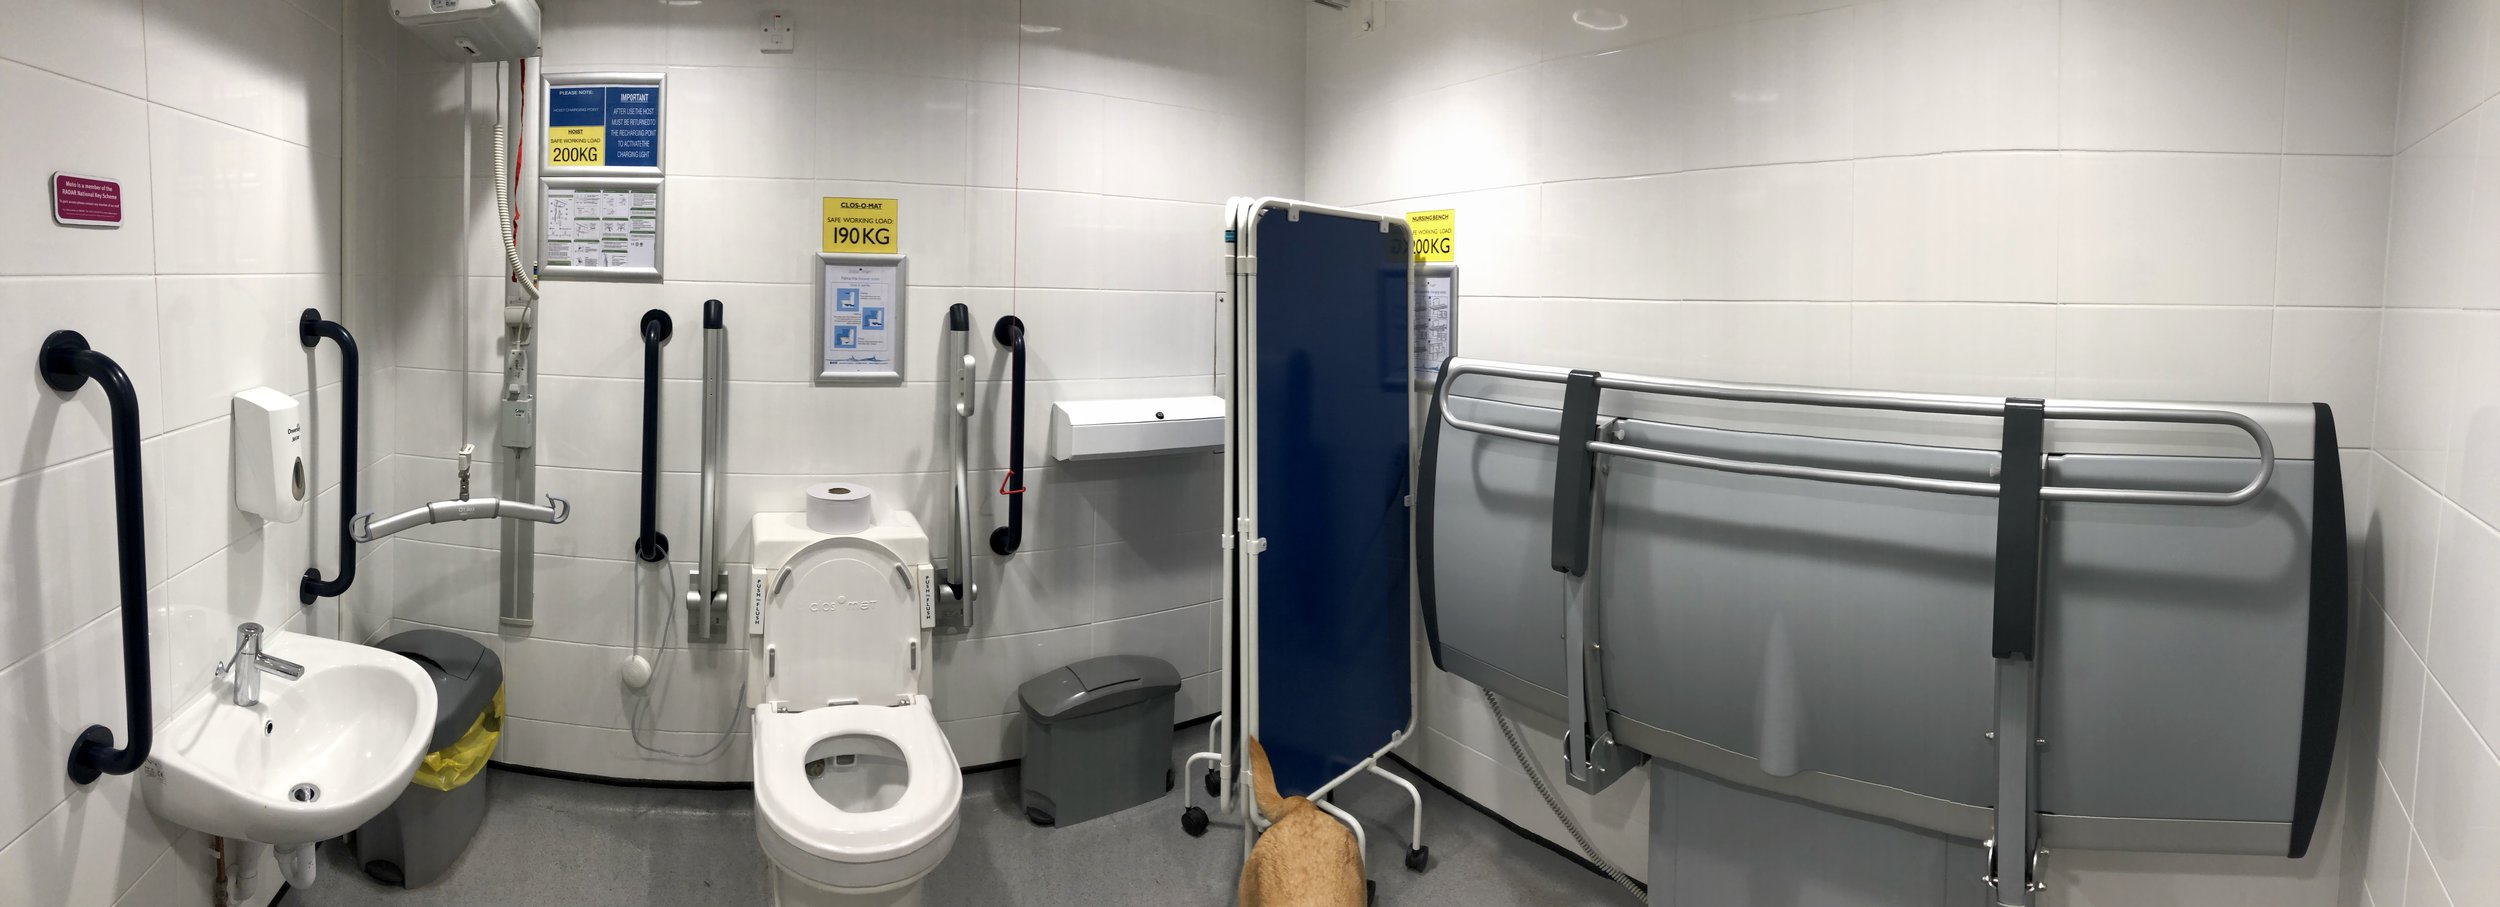 This photo, along with the 3 images further on in this post are from the Changing Places Toilet at the    Donington Service Station    on the M1 Motorway!